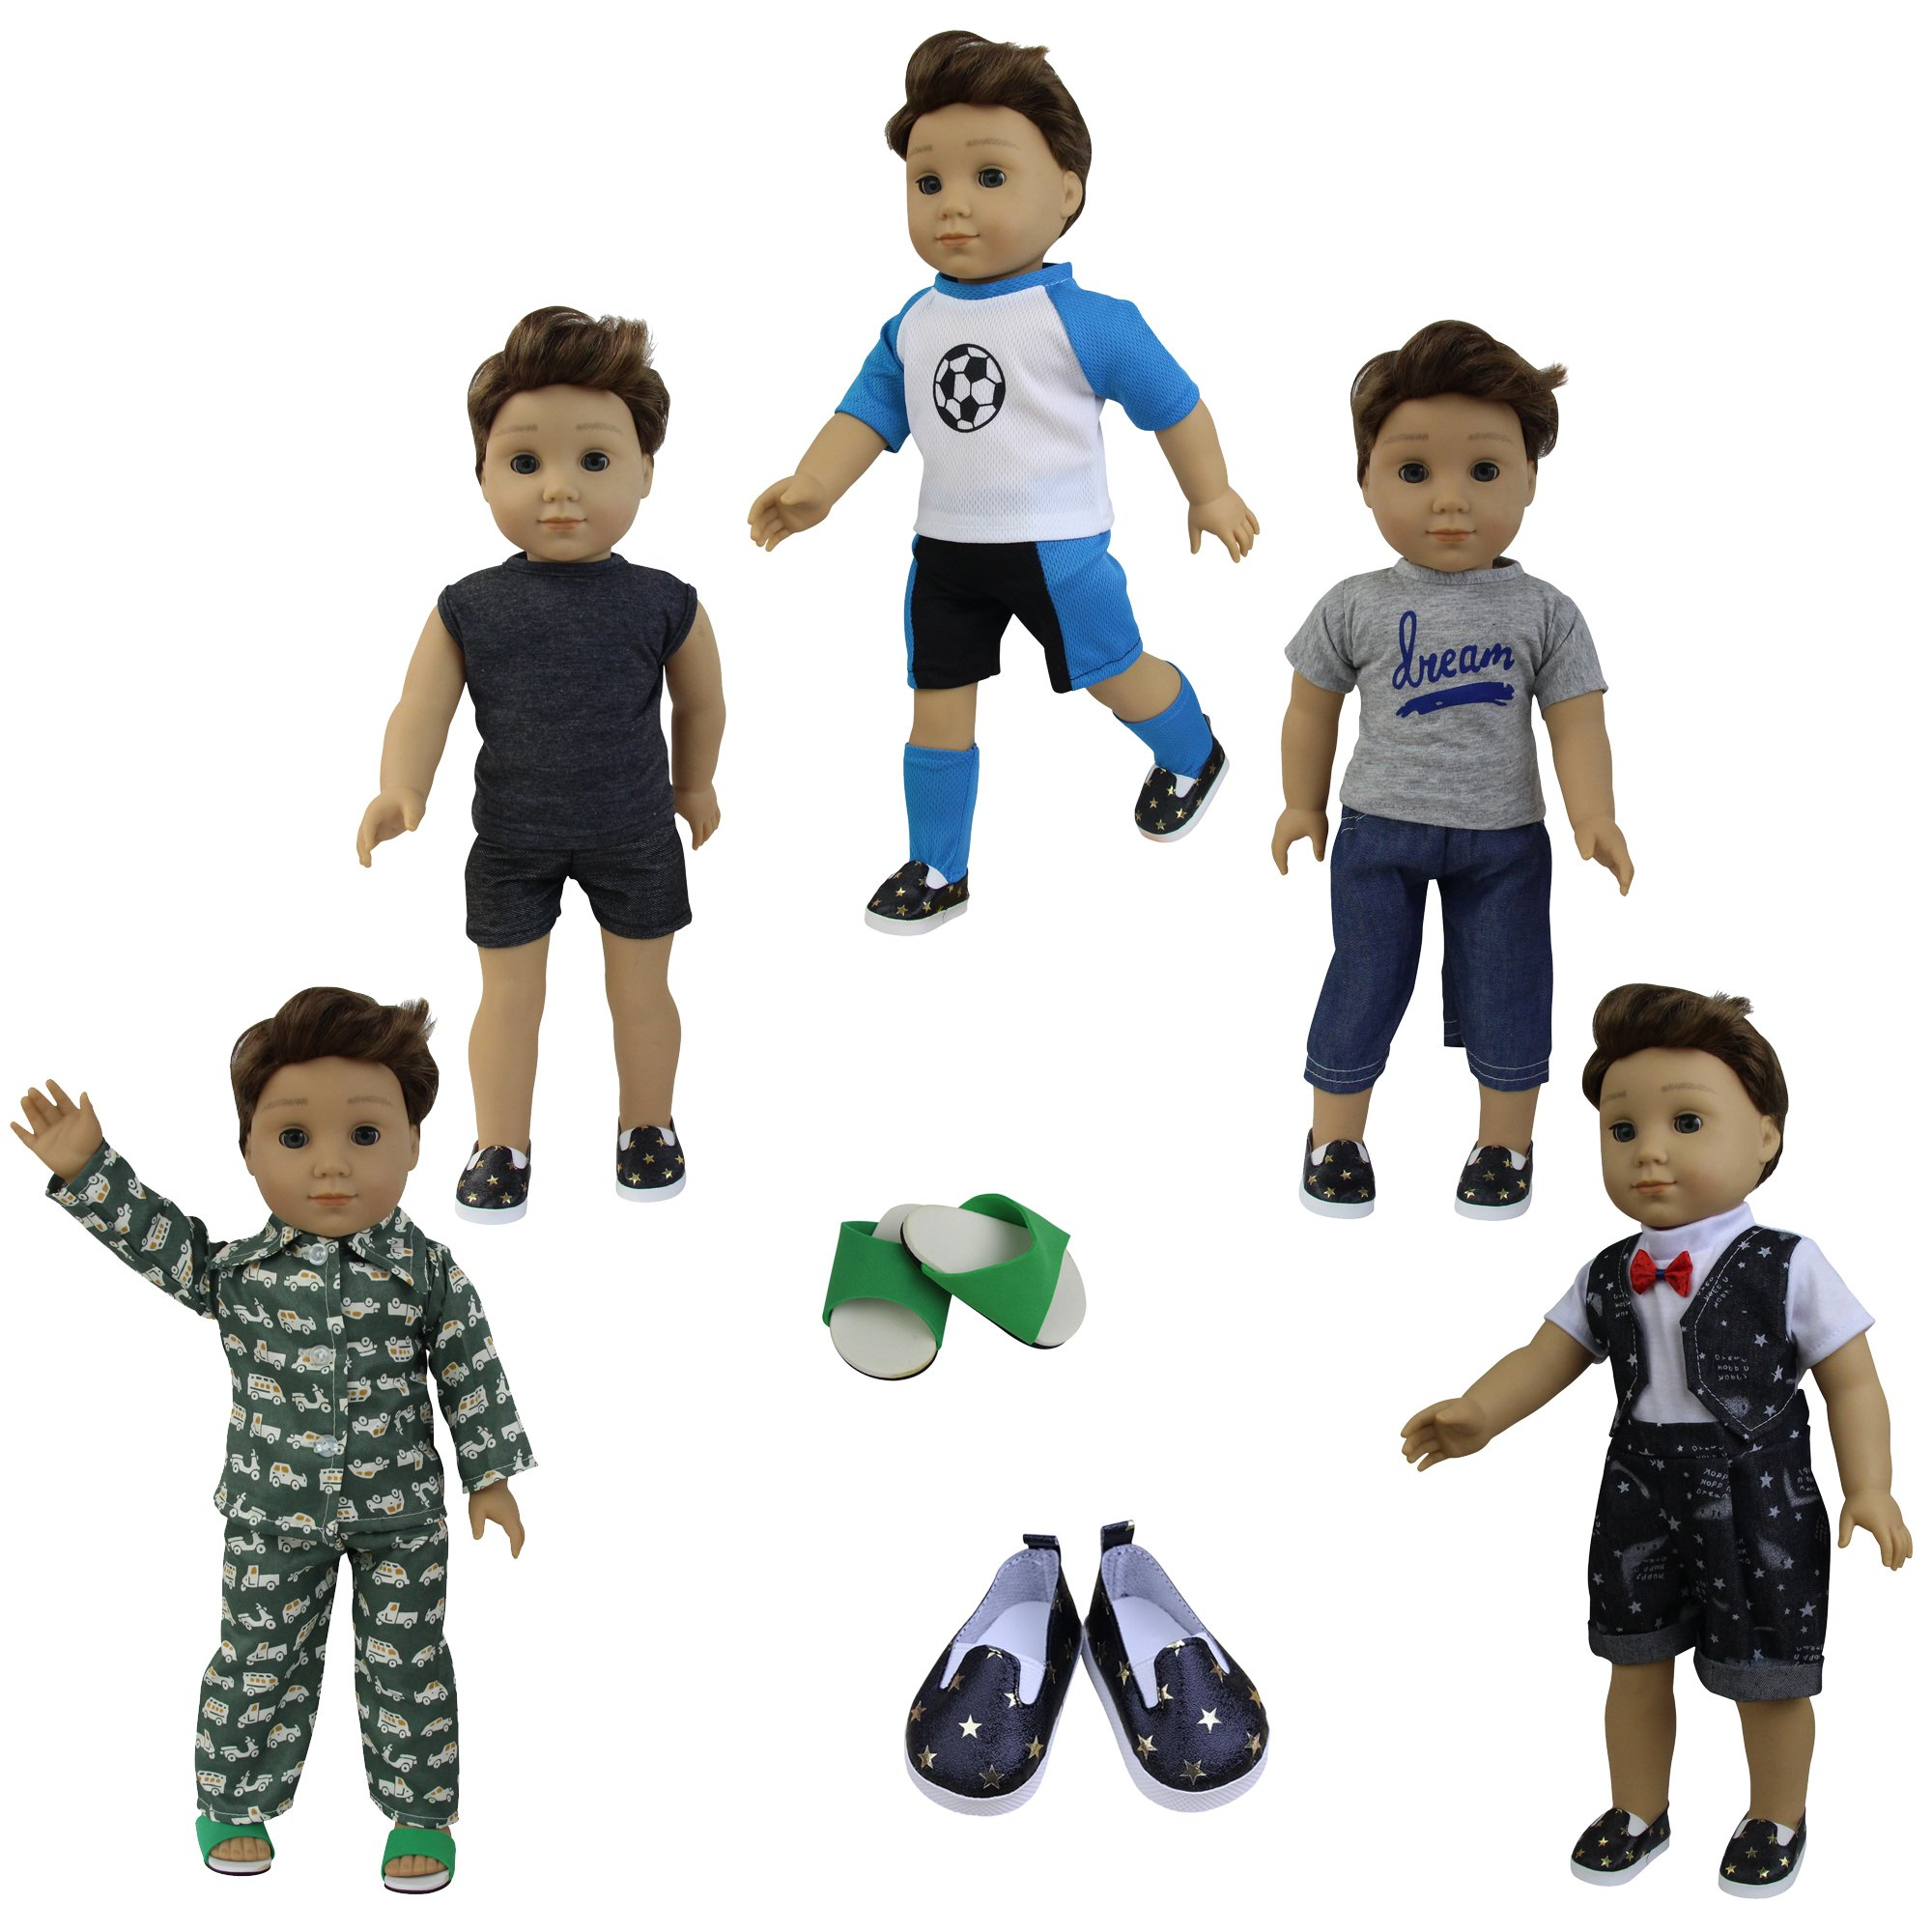 ZITA ELEMENT 5 Sets Boy Doll Clothes with 2 Pairs of Shoes for 18 Inch American Girl Boy Doll Logan Doll Accessories